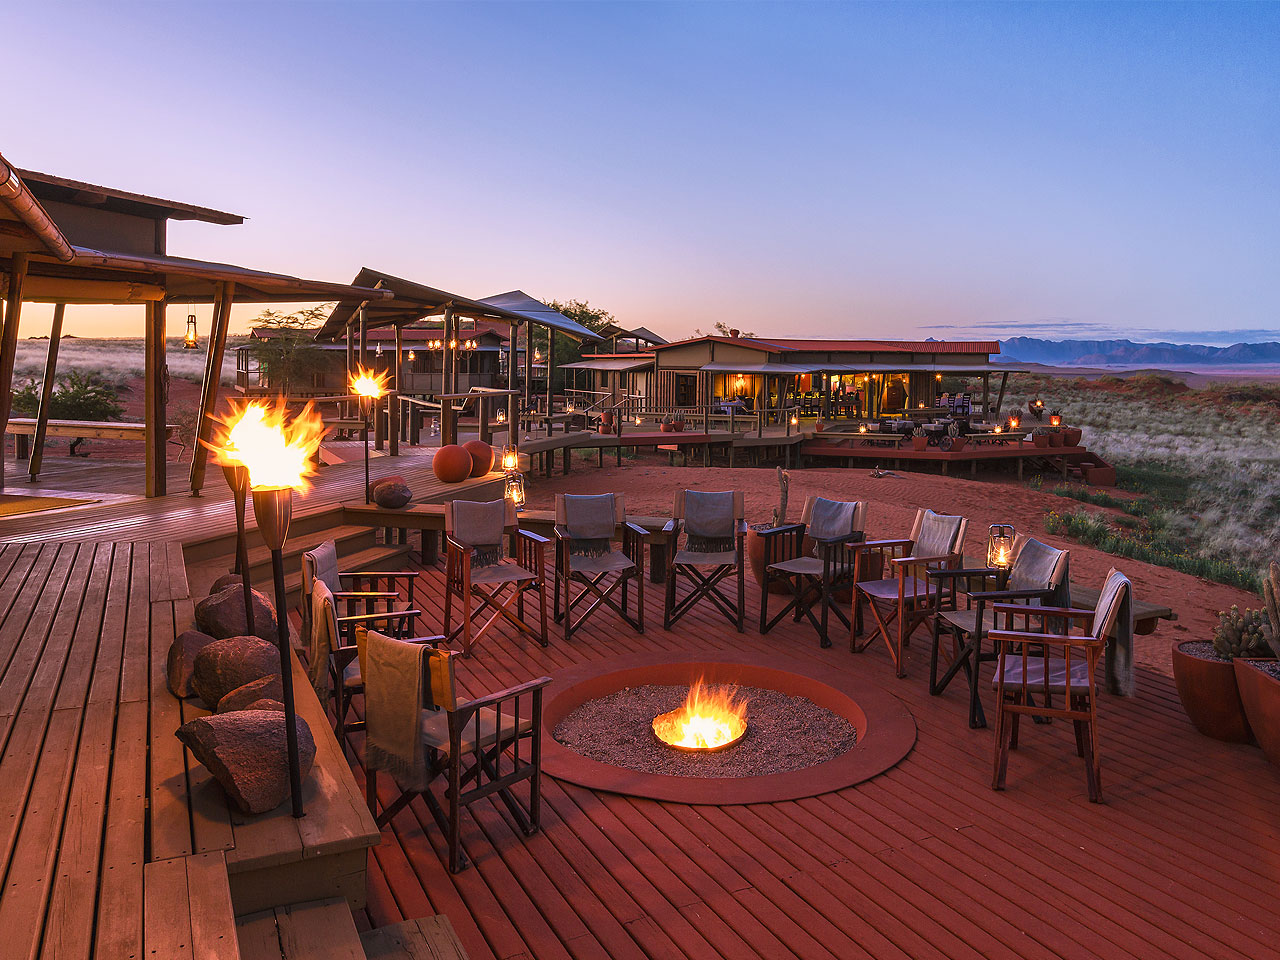 View of the fire pit, deck and main area of Wolwedans Dunes Lodge at dusk.